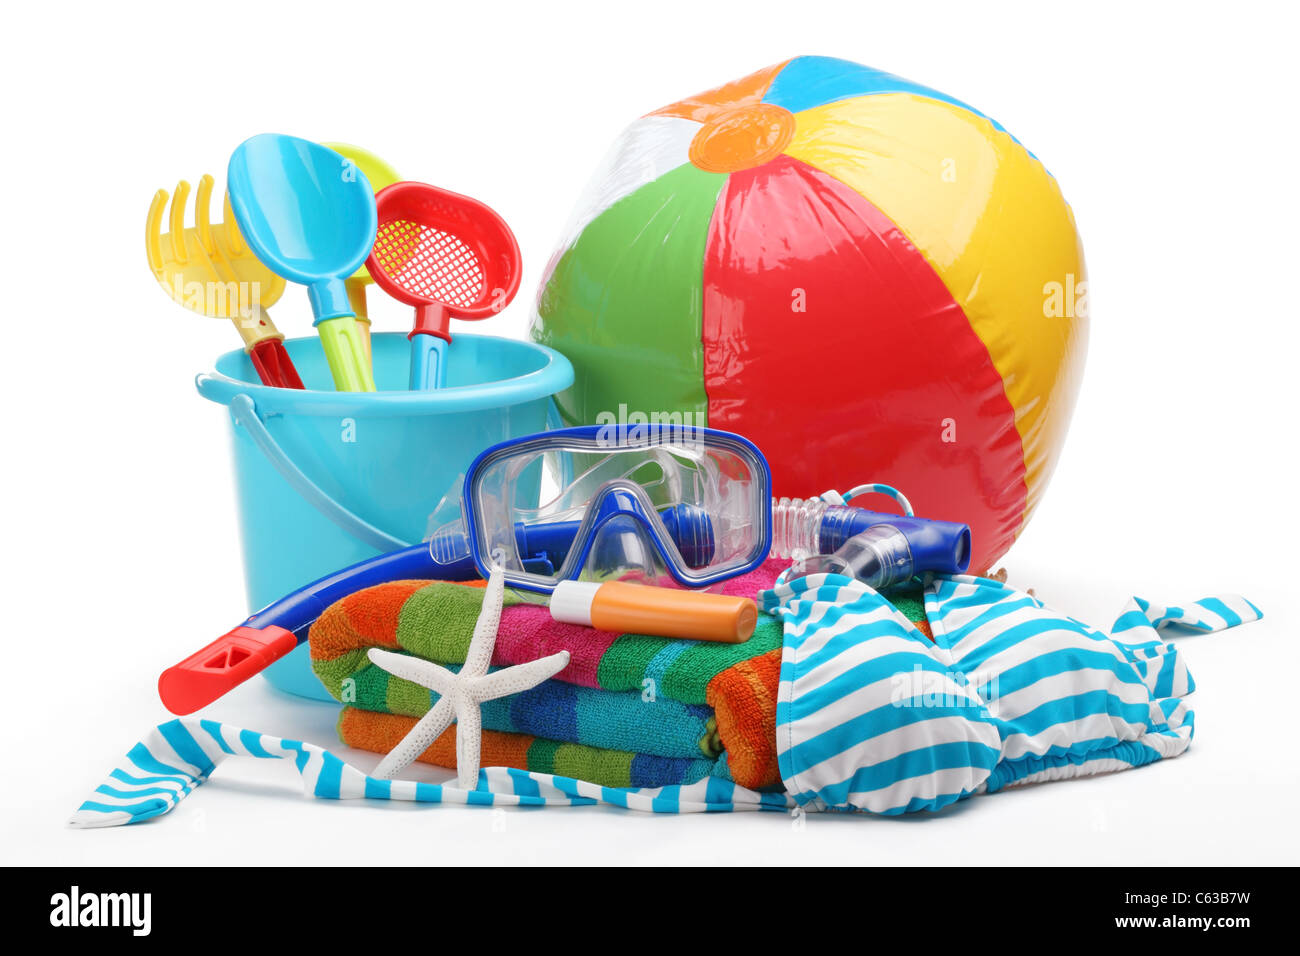 Plastic toys and diving equipment with swimming suit on white background. Stock Photo